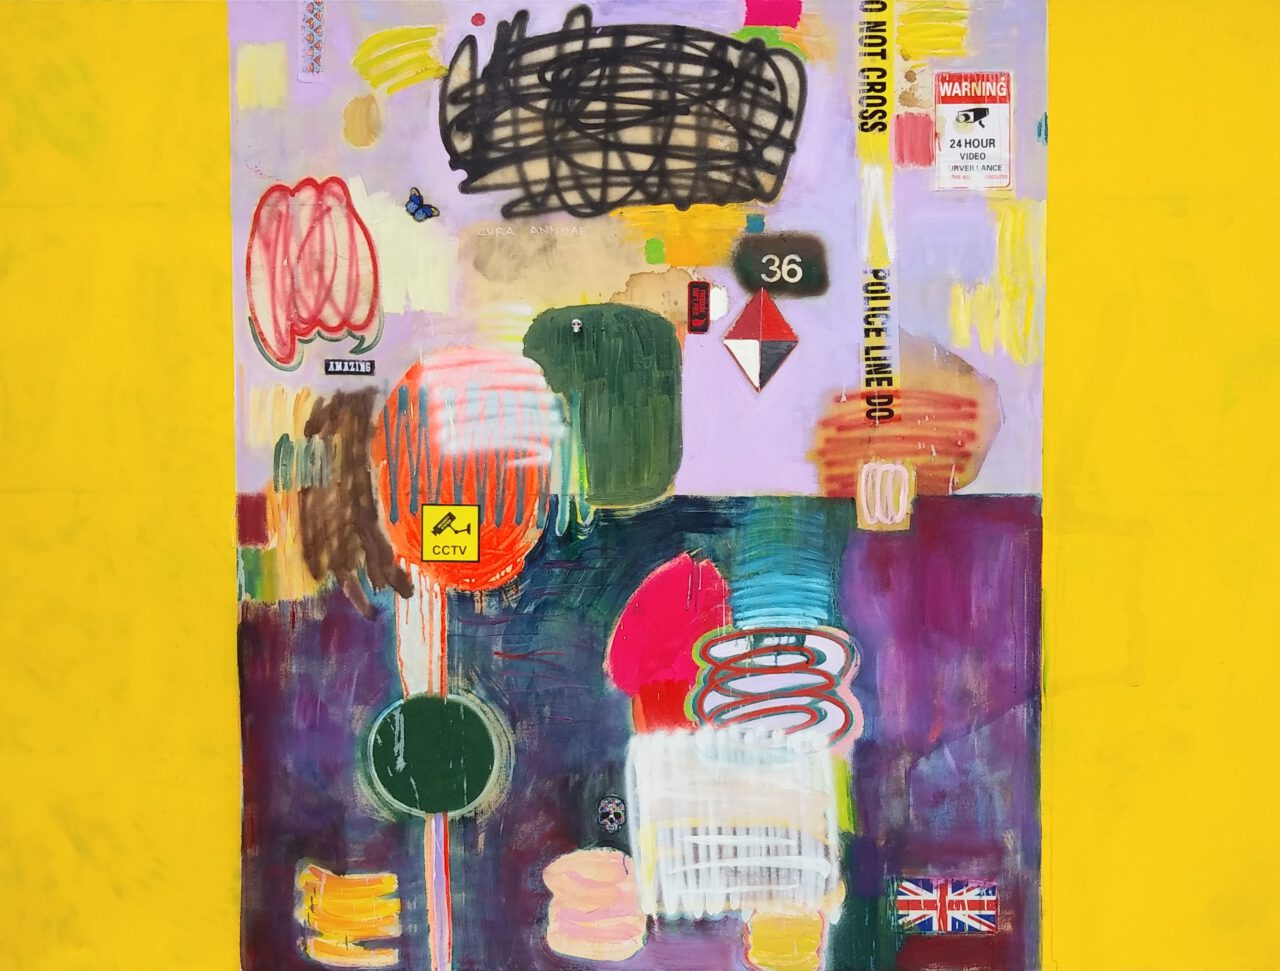 MiT#135 (Cura Annonae - yellow). 2020. oil, acrylic, spray paint, tea, coffee, wine, motor oil, rubber, marker pen, patch, sticker, leather glove, denim, plastic tape, metal ornament skull, security camera on canvas. 72 x 96 inches